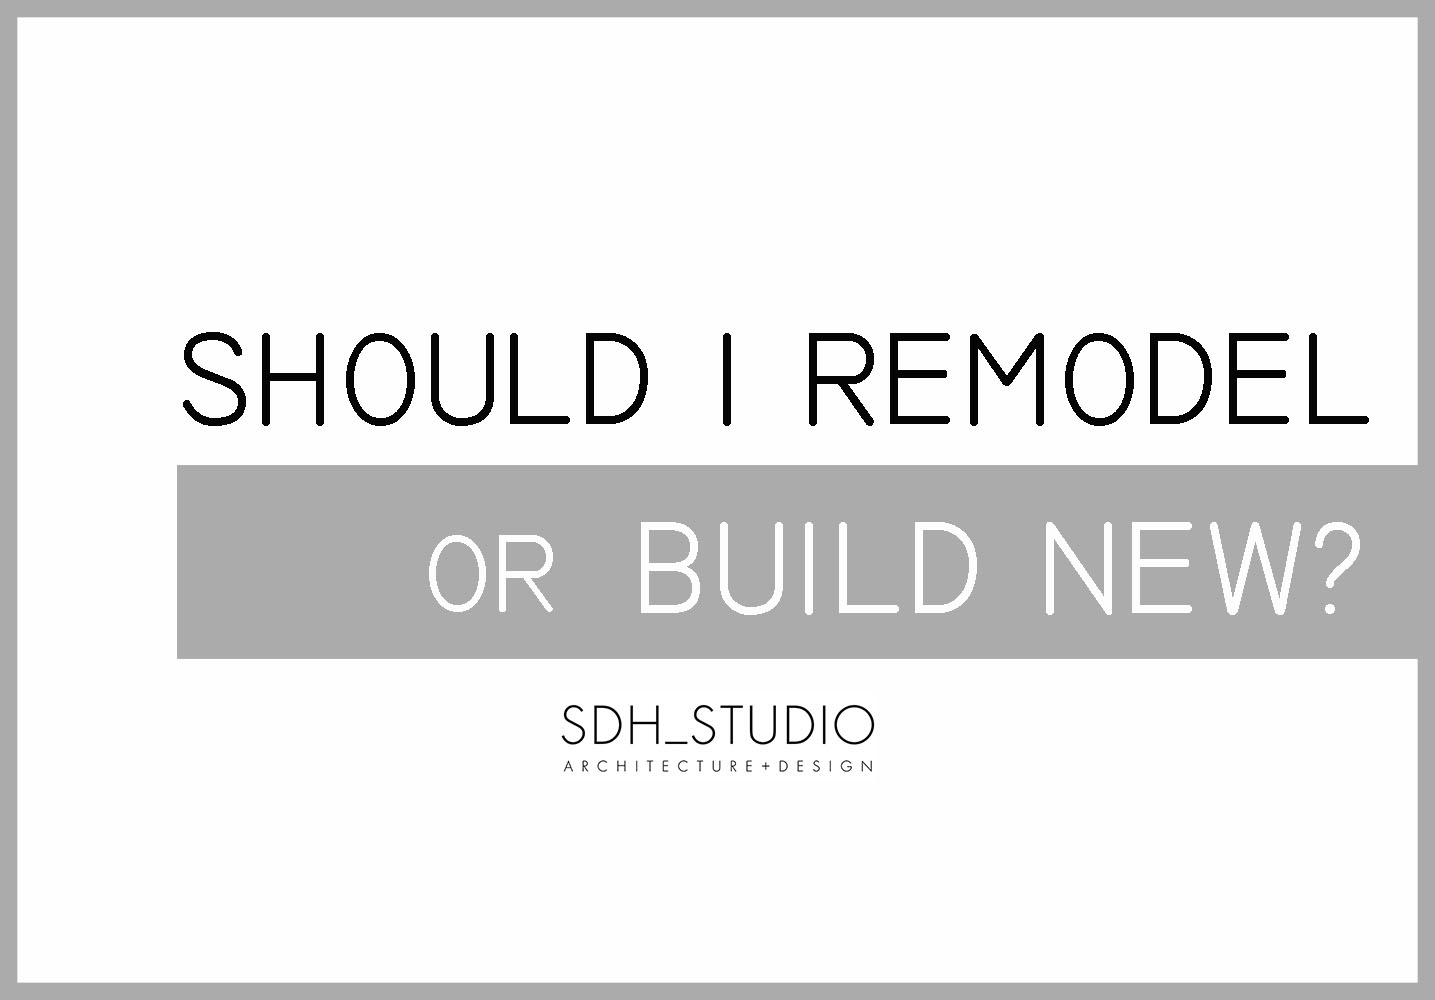 Should I remodel or build new?